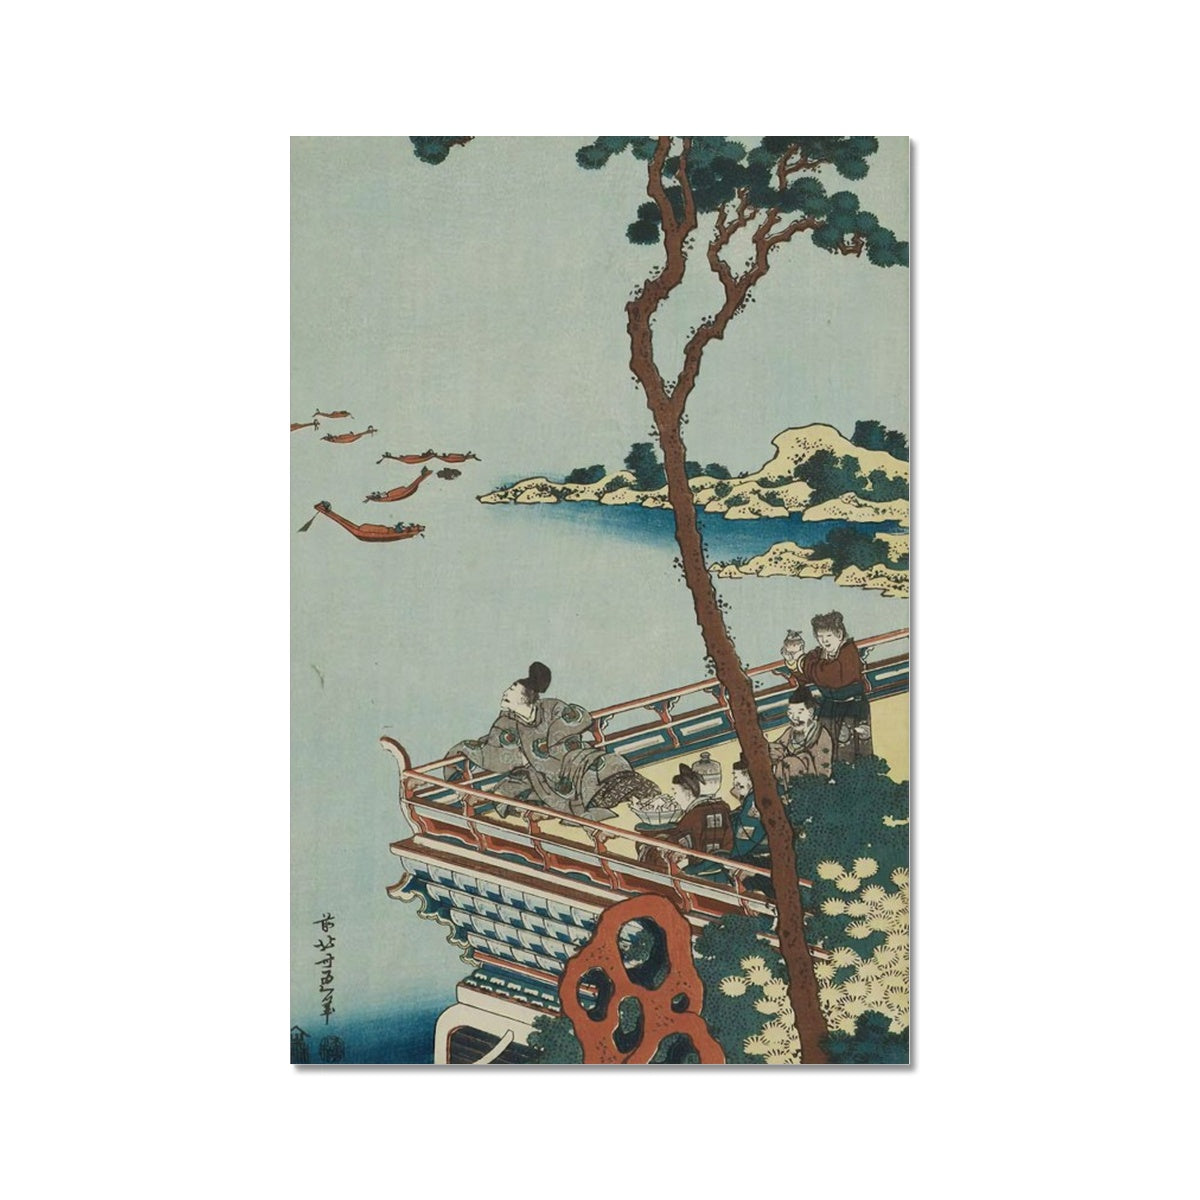 Abe no Nakamaro Gazing At The Moon From A Terrace (1833) - Fine Art Print